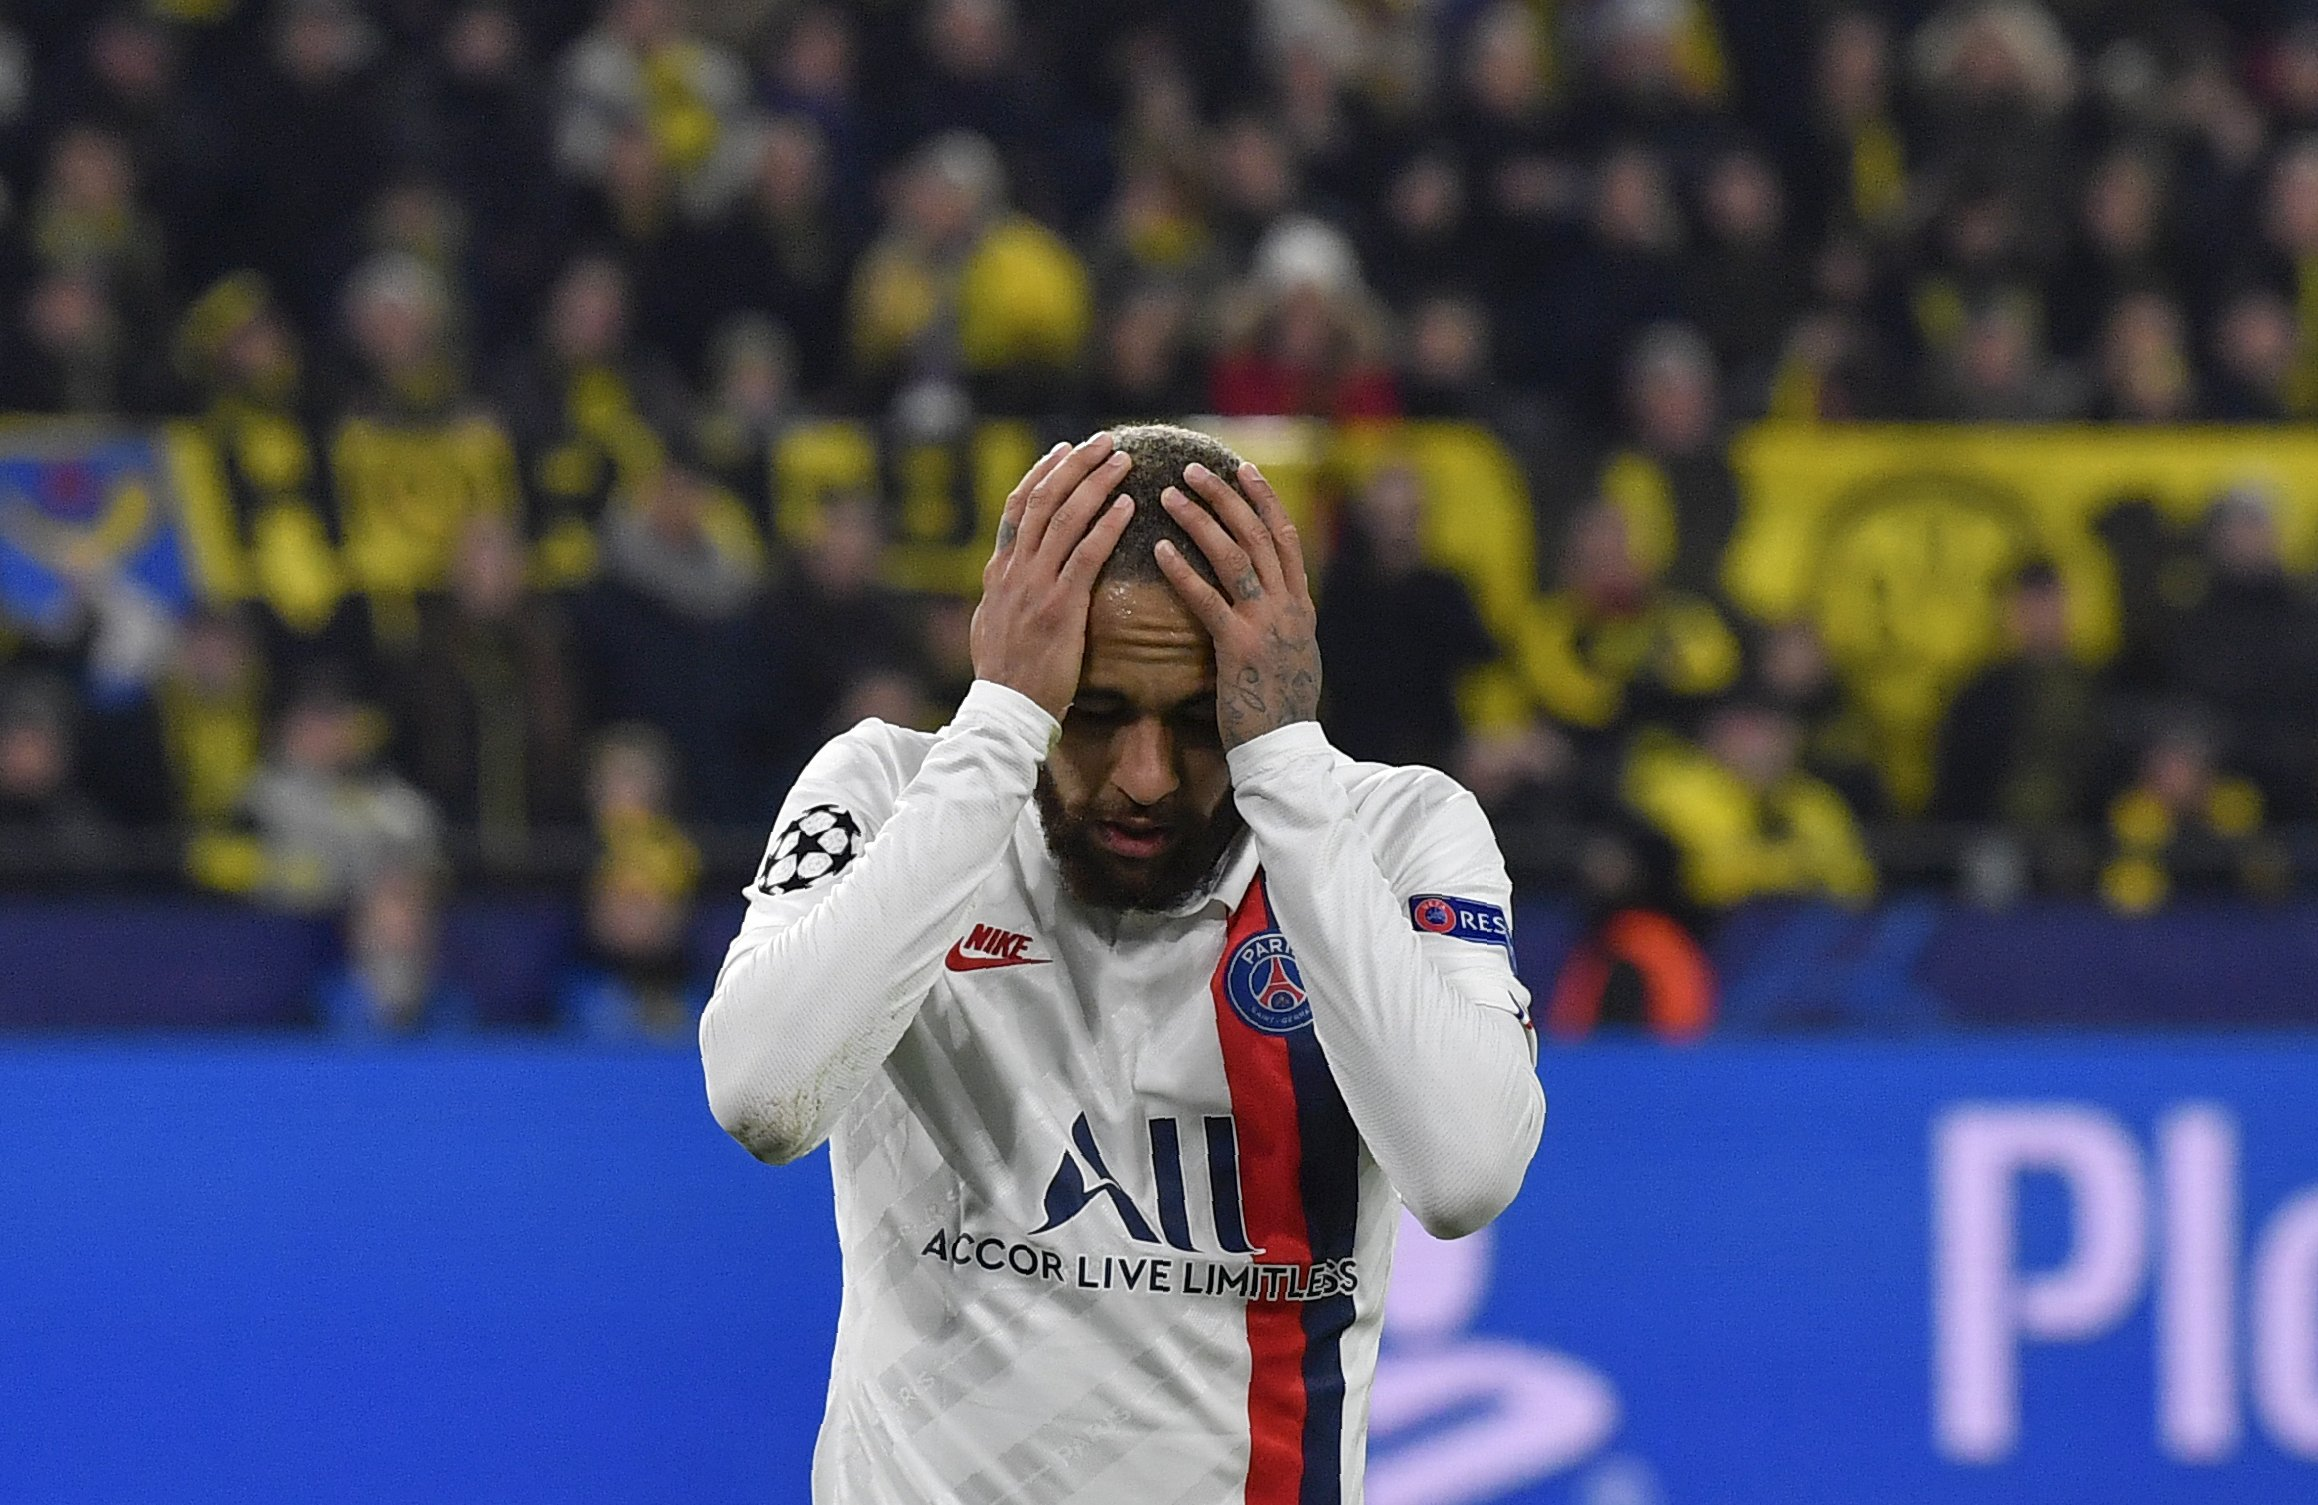 PSG's latest player party annoys coach Tuchel